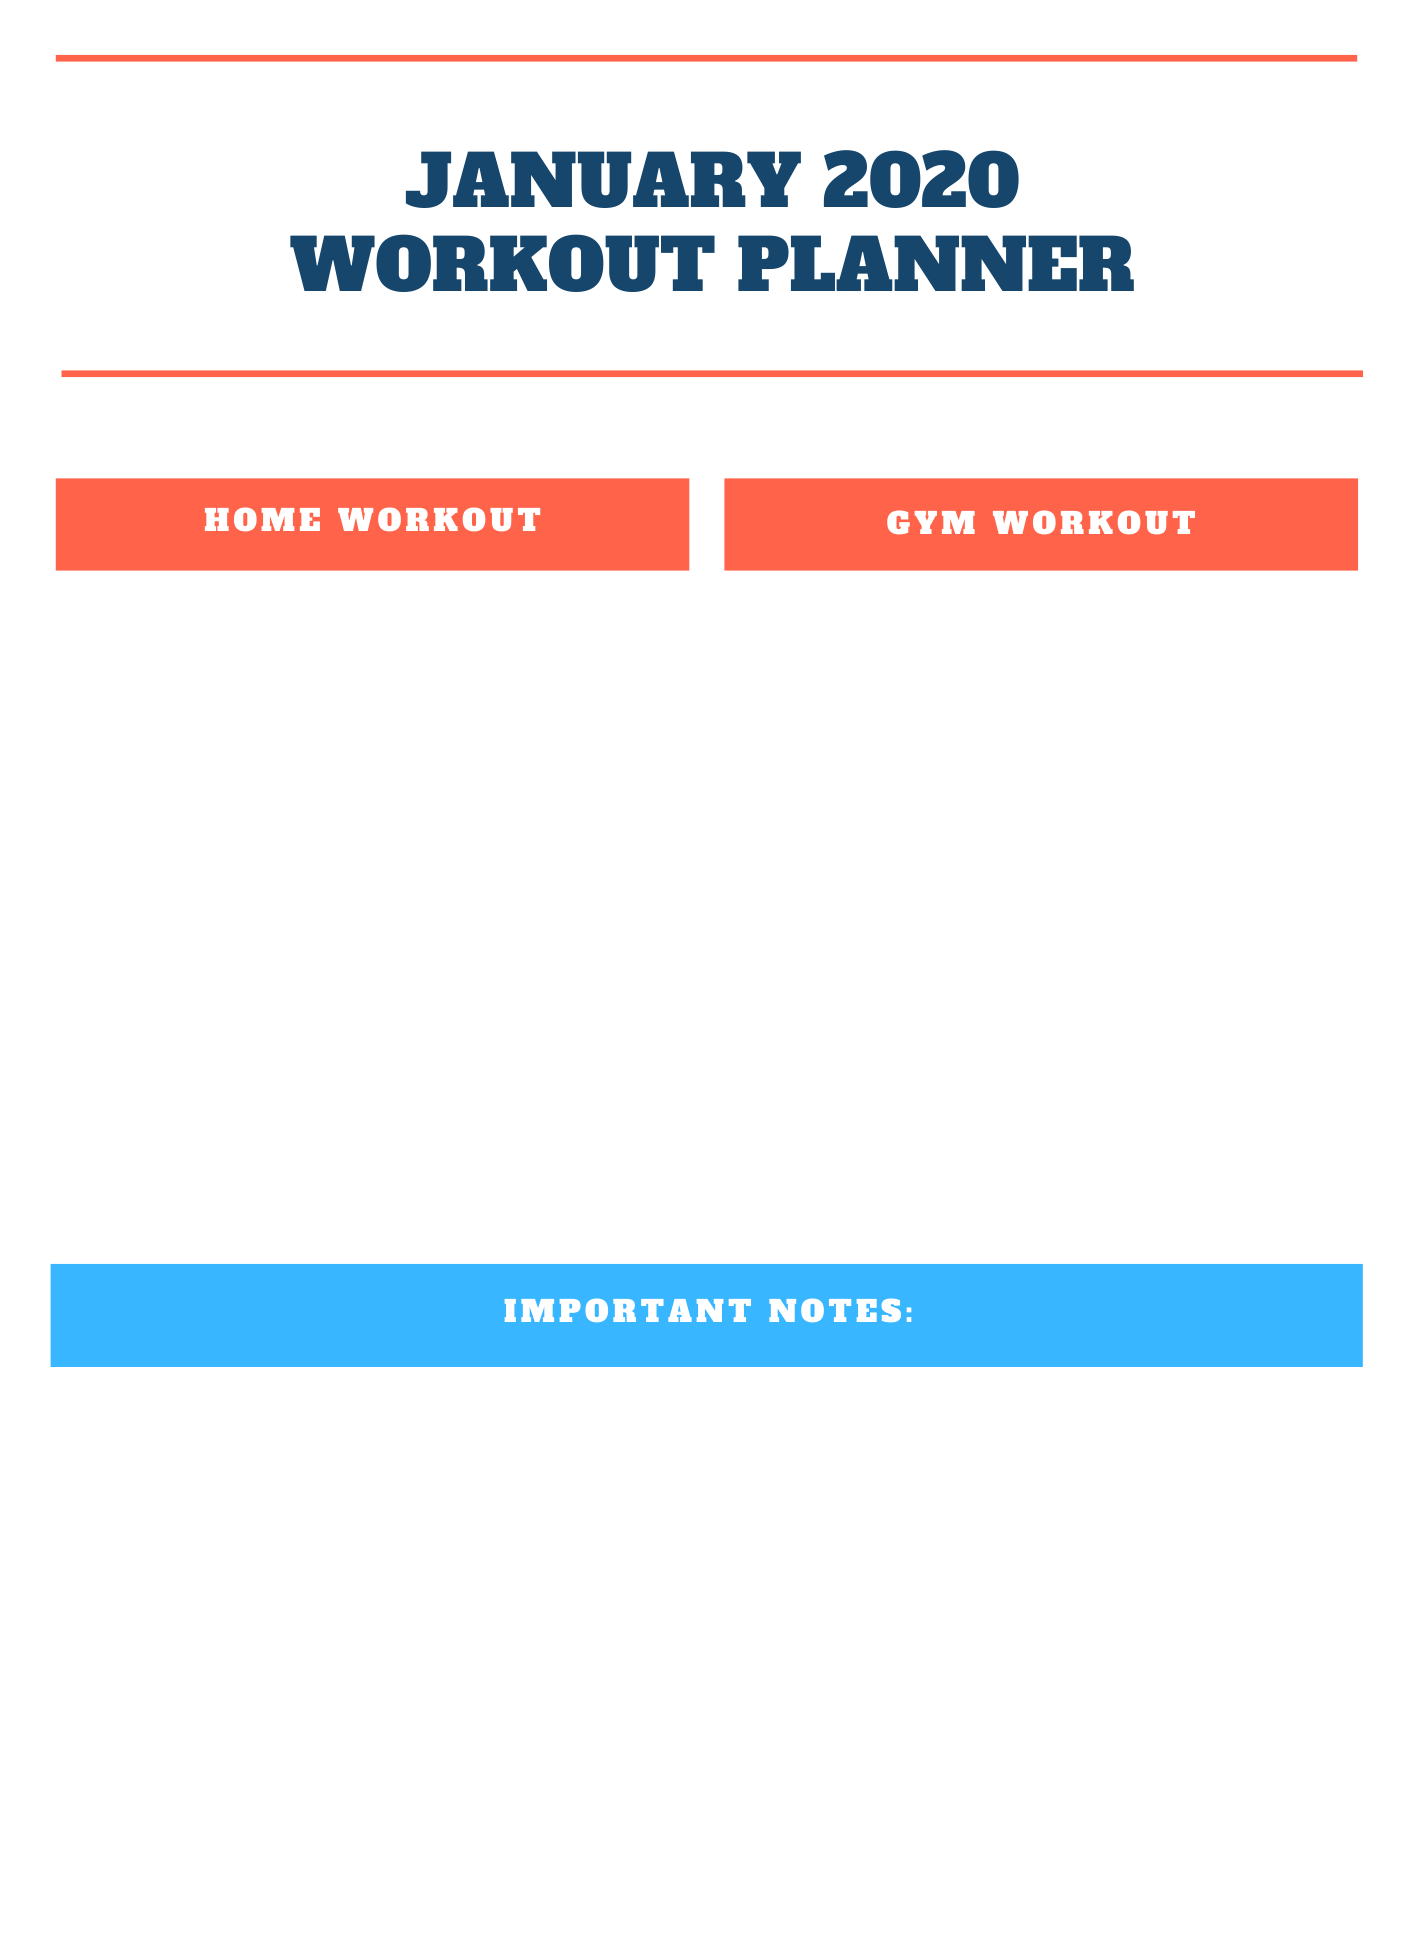 January 2020 Workout Planner